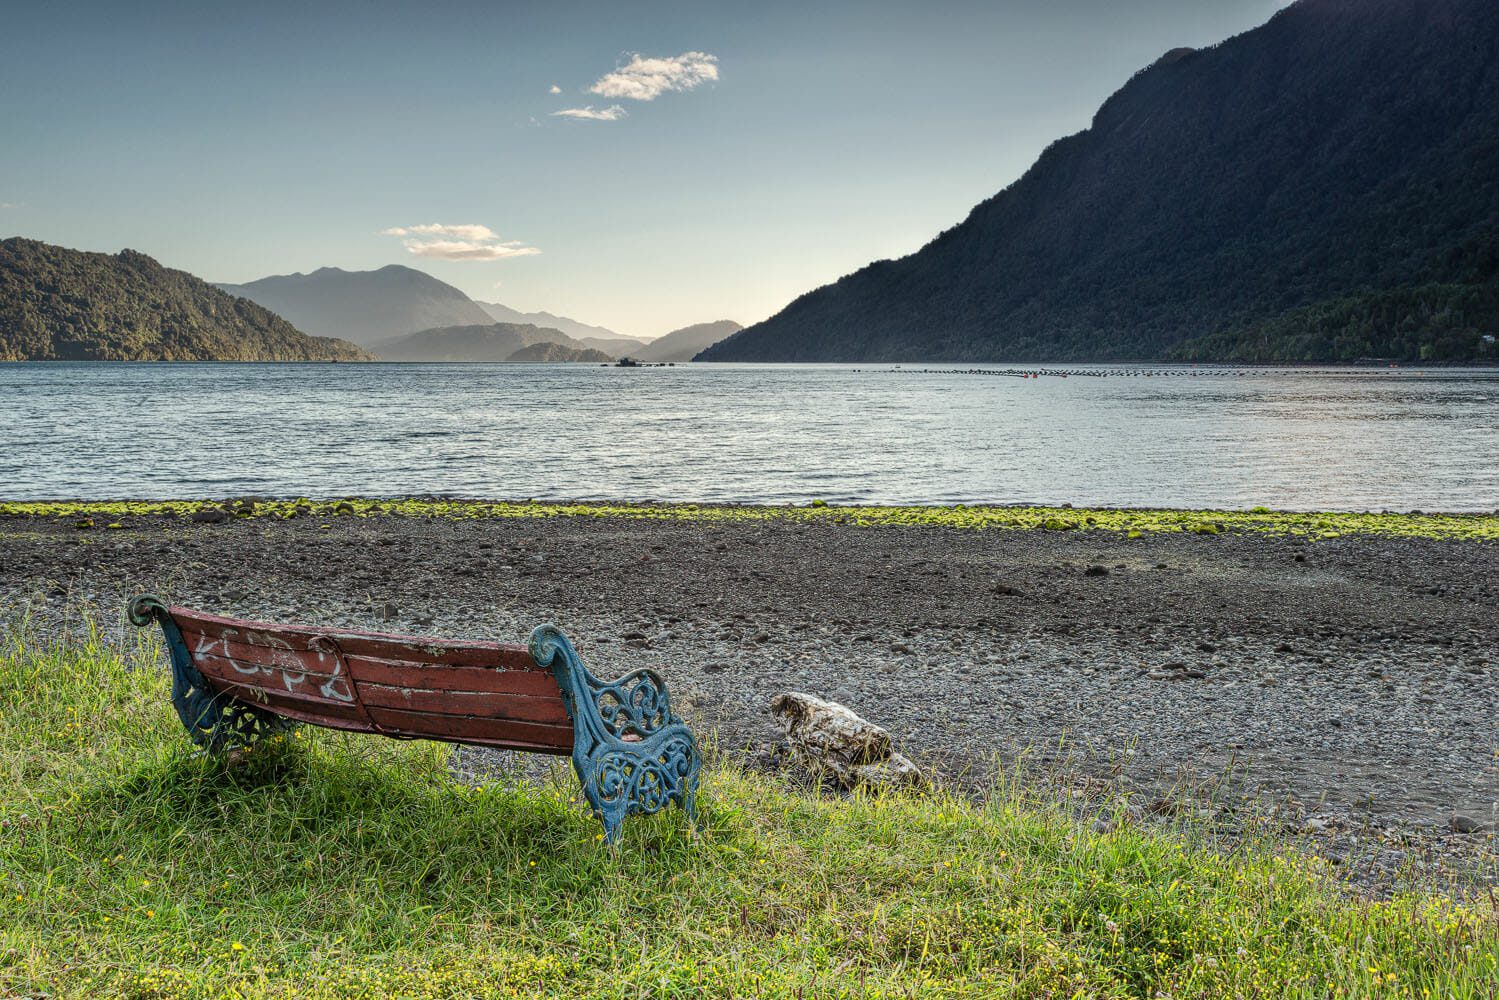 Bench with a peacefull view on the Hornopiren fjord